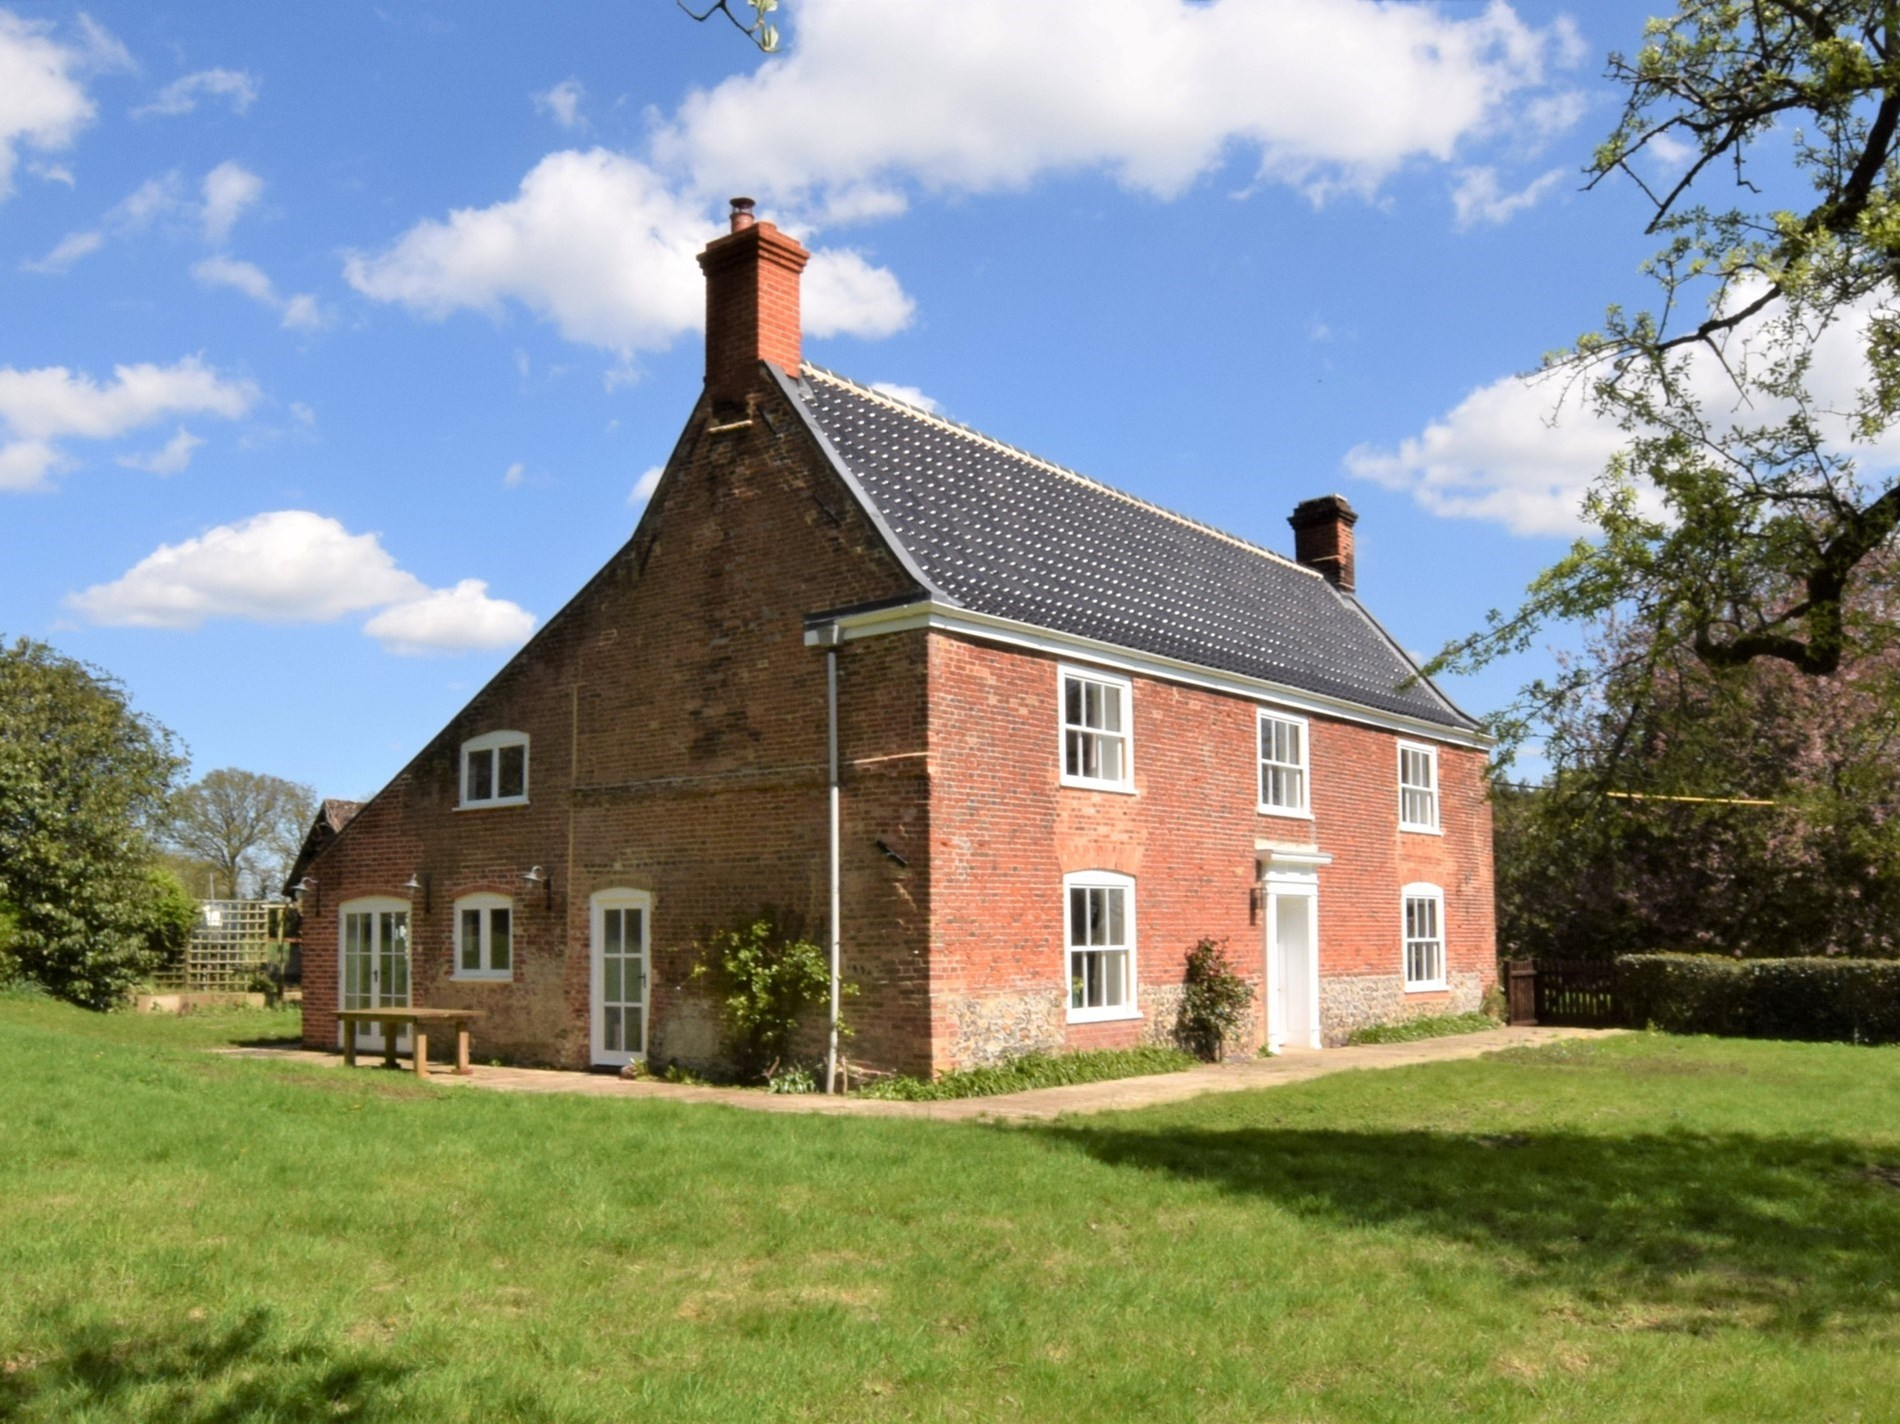 5 Bedroom Cottage in Norwich, East Anglia